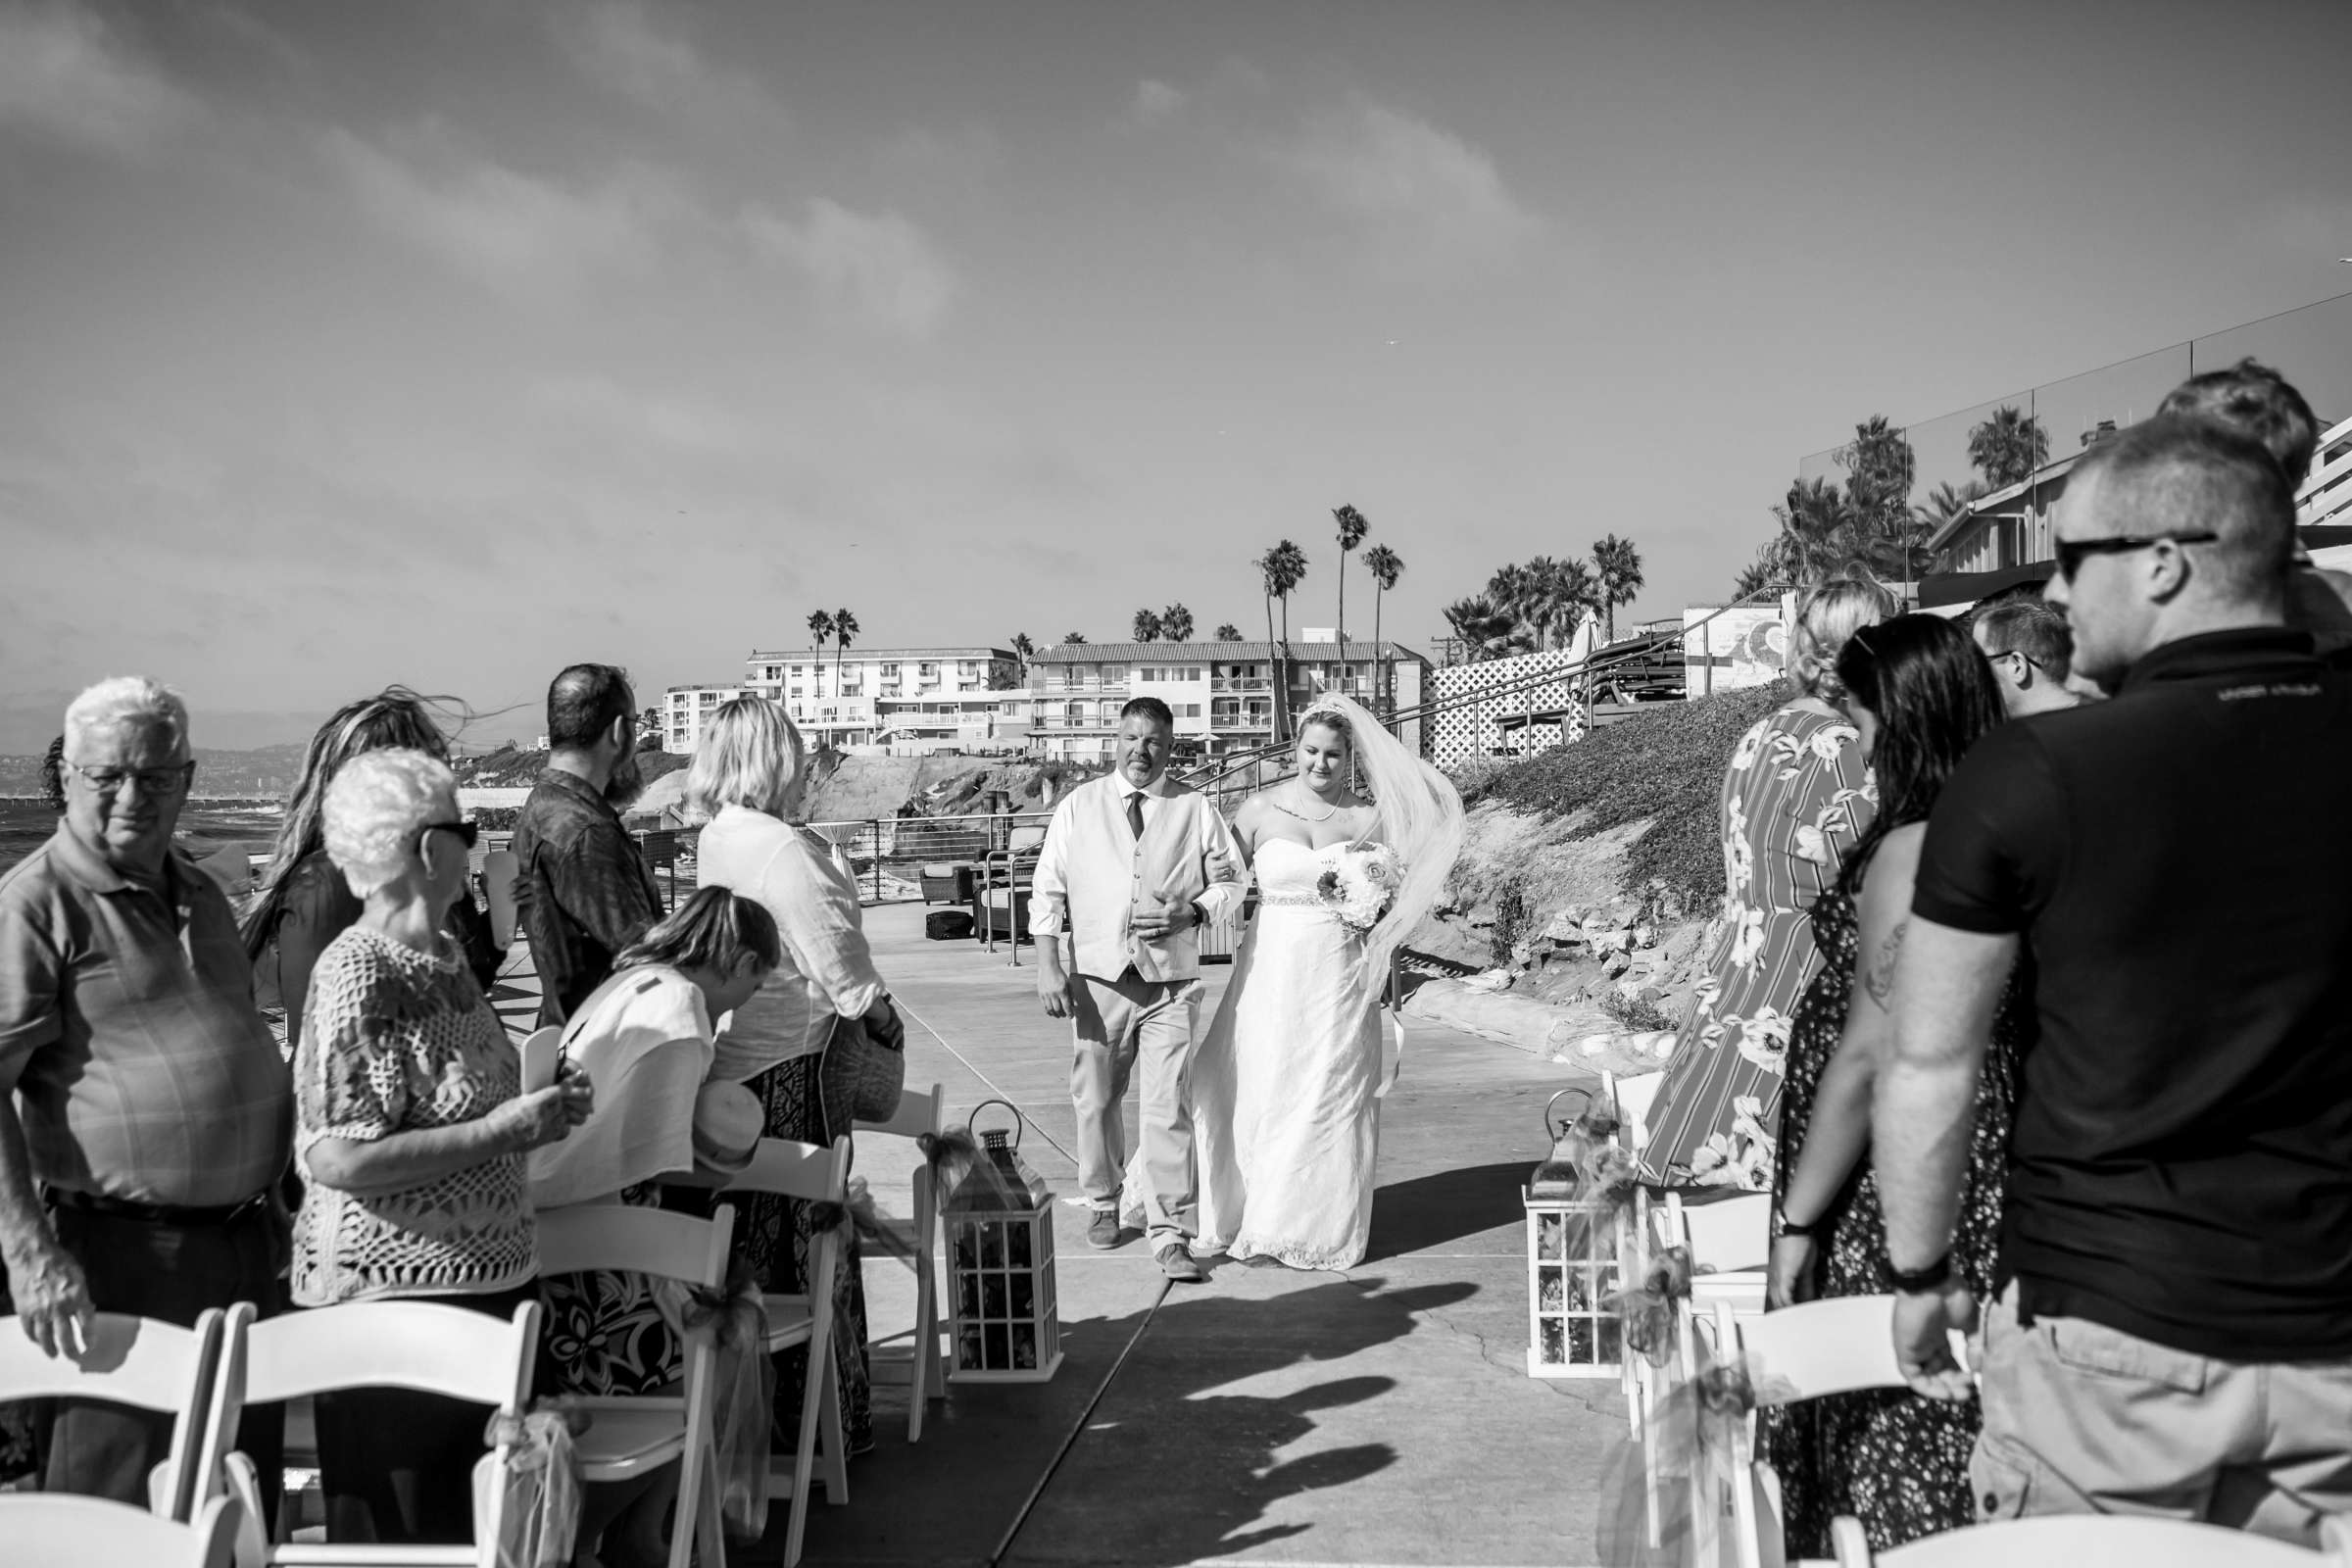 The Inn at Sunset Cliffs Wedding, Melinda and Benjamin Wedding Photo #48 by True Photography